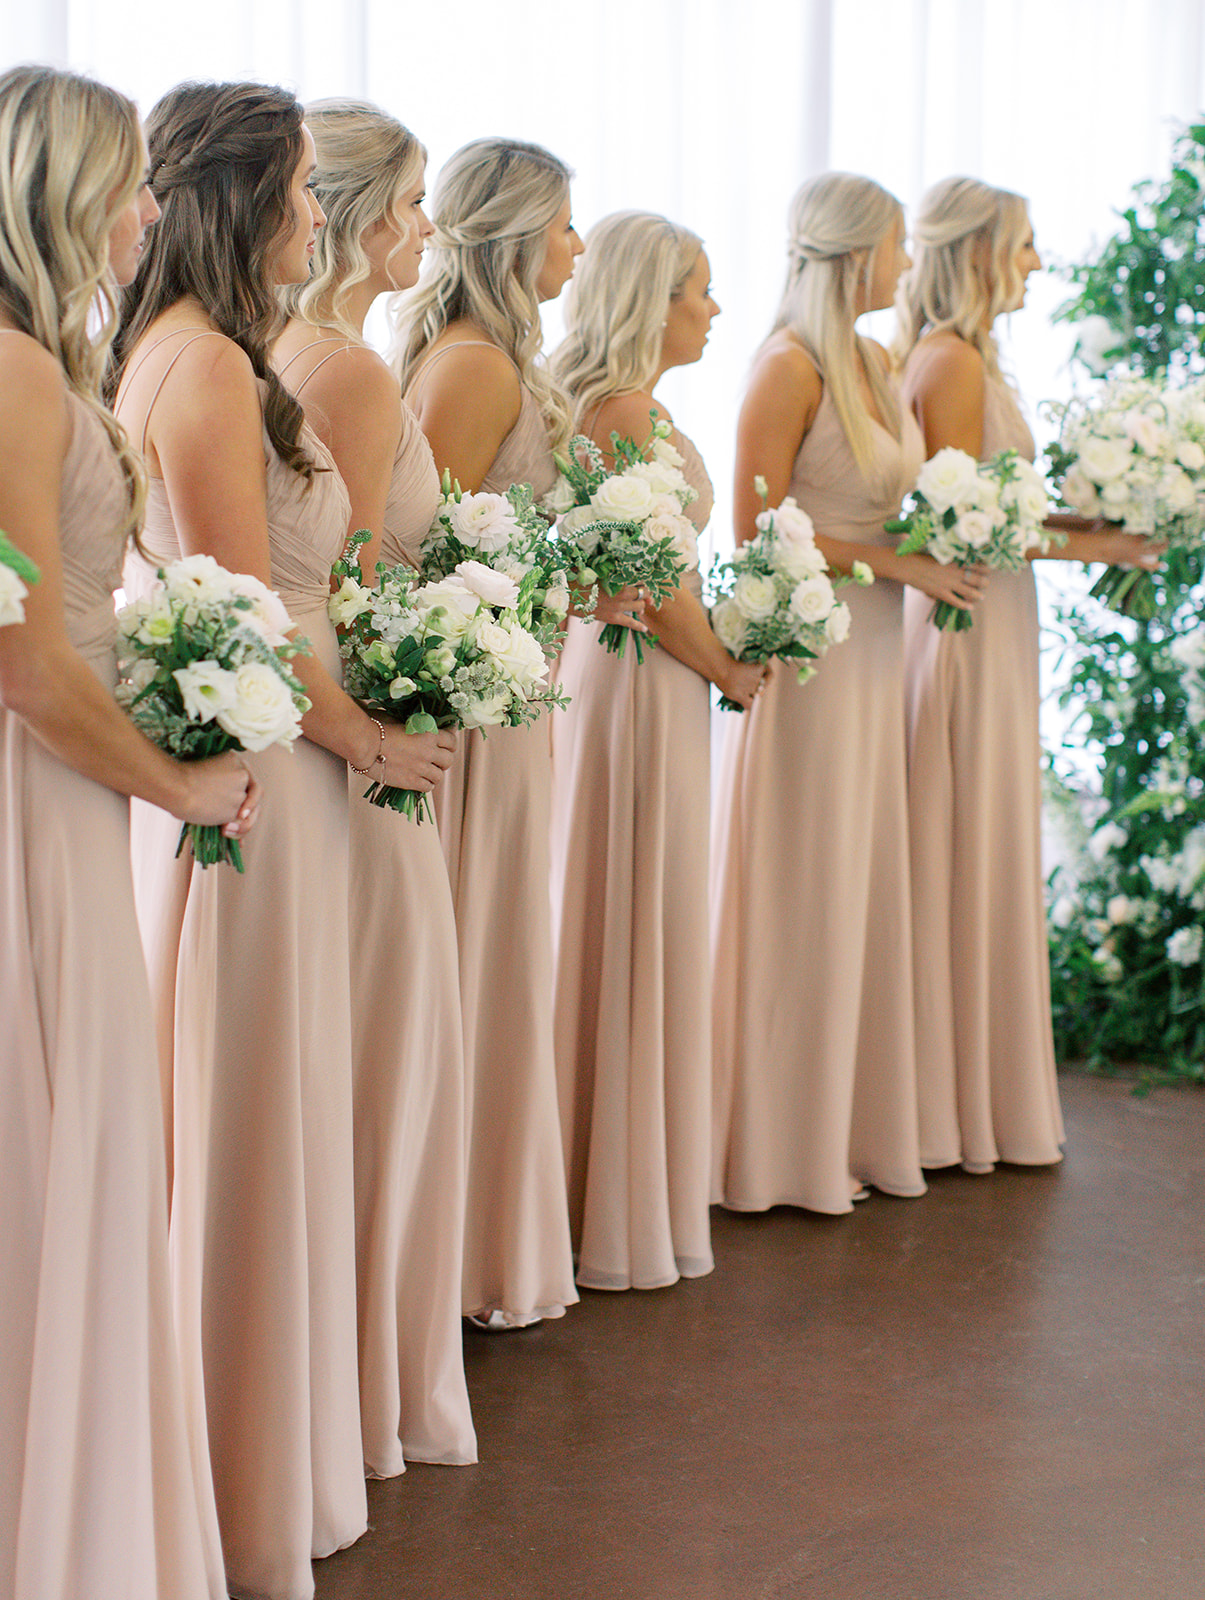 Bridesmaids holding bouquets at Ritz Charles wedding ceremony